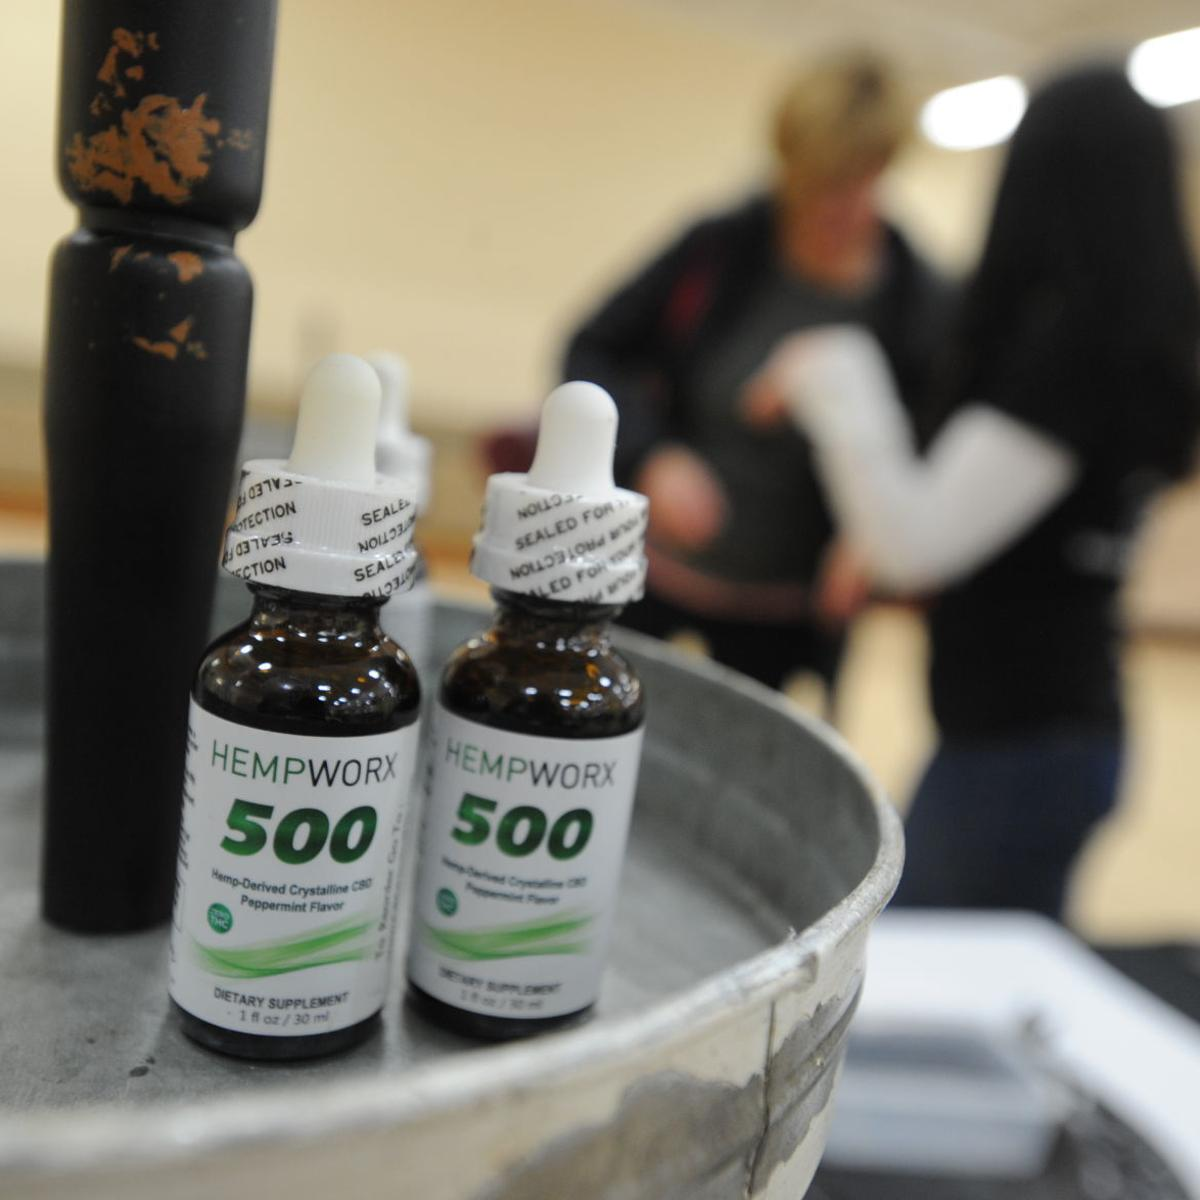 CBD-infused beverages are on the rise, but face major issue